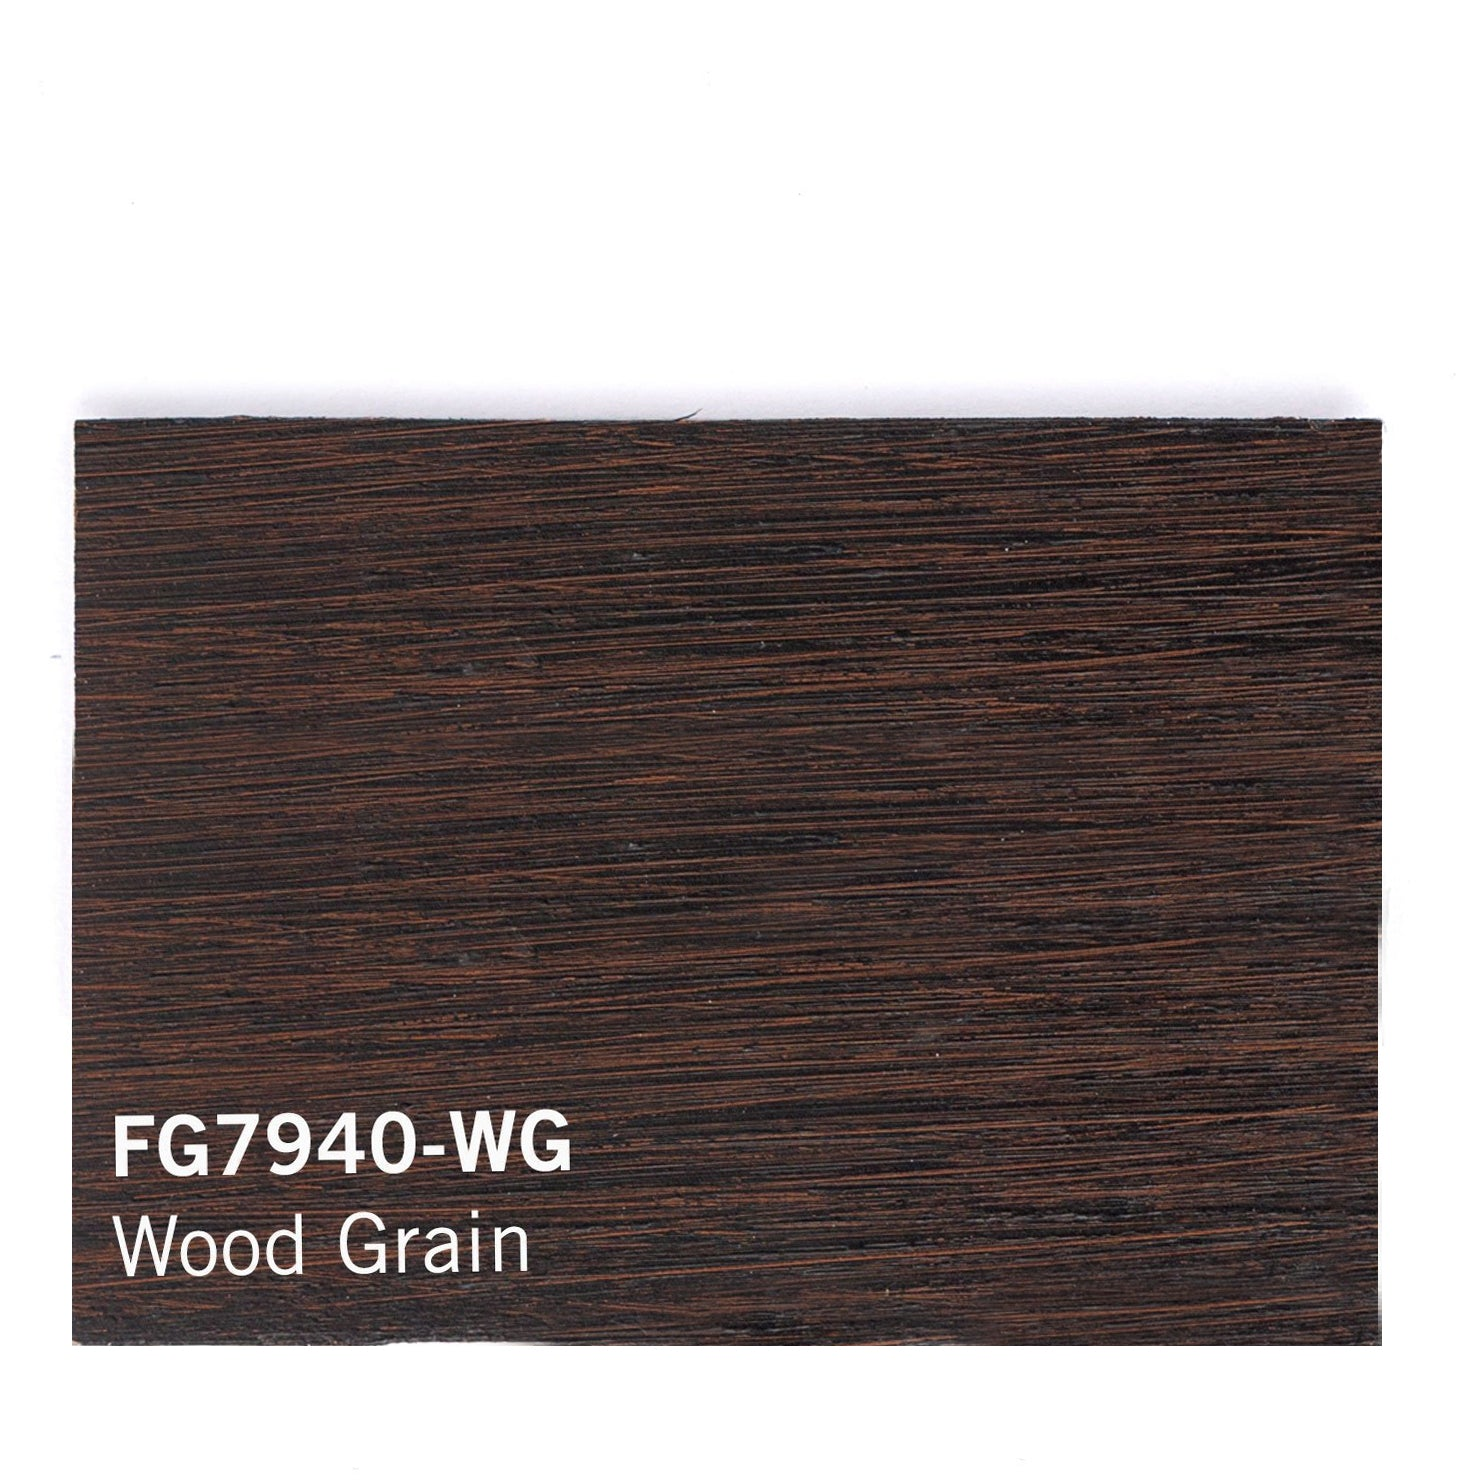 Sample Tile, Paint Color, Wood Grain